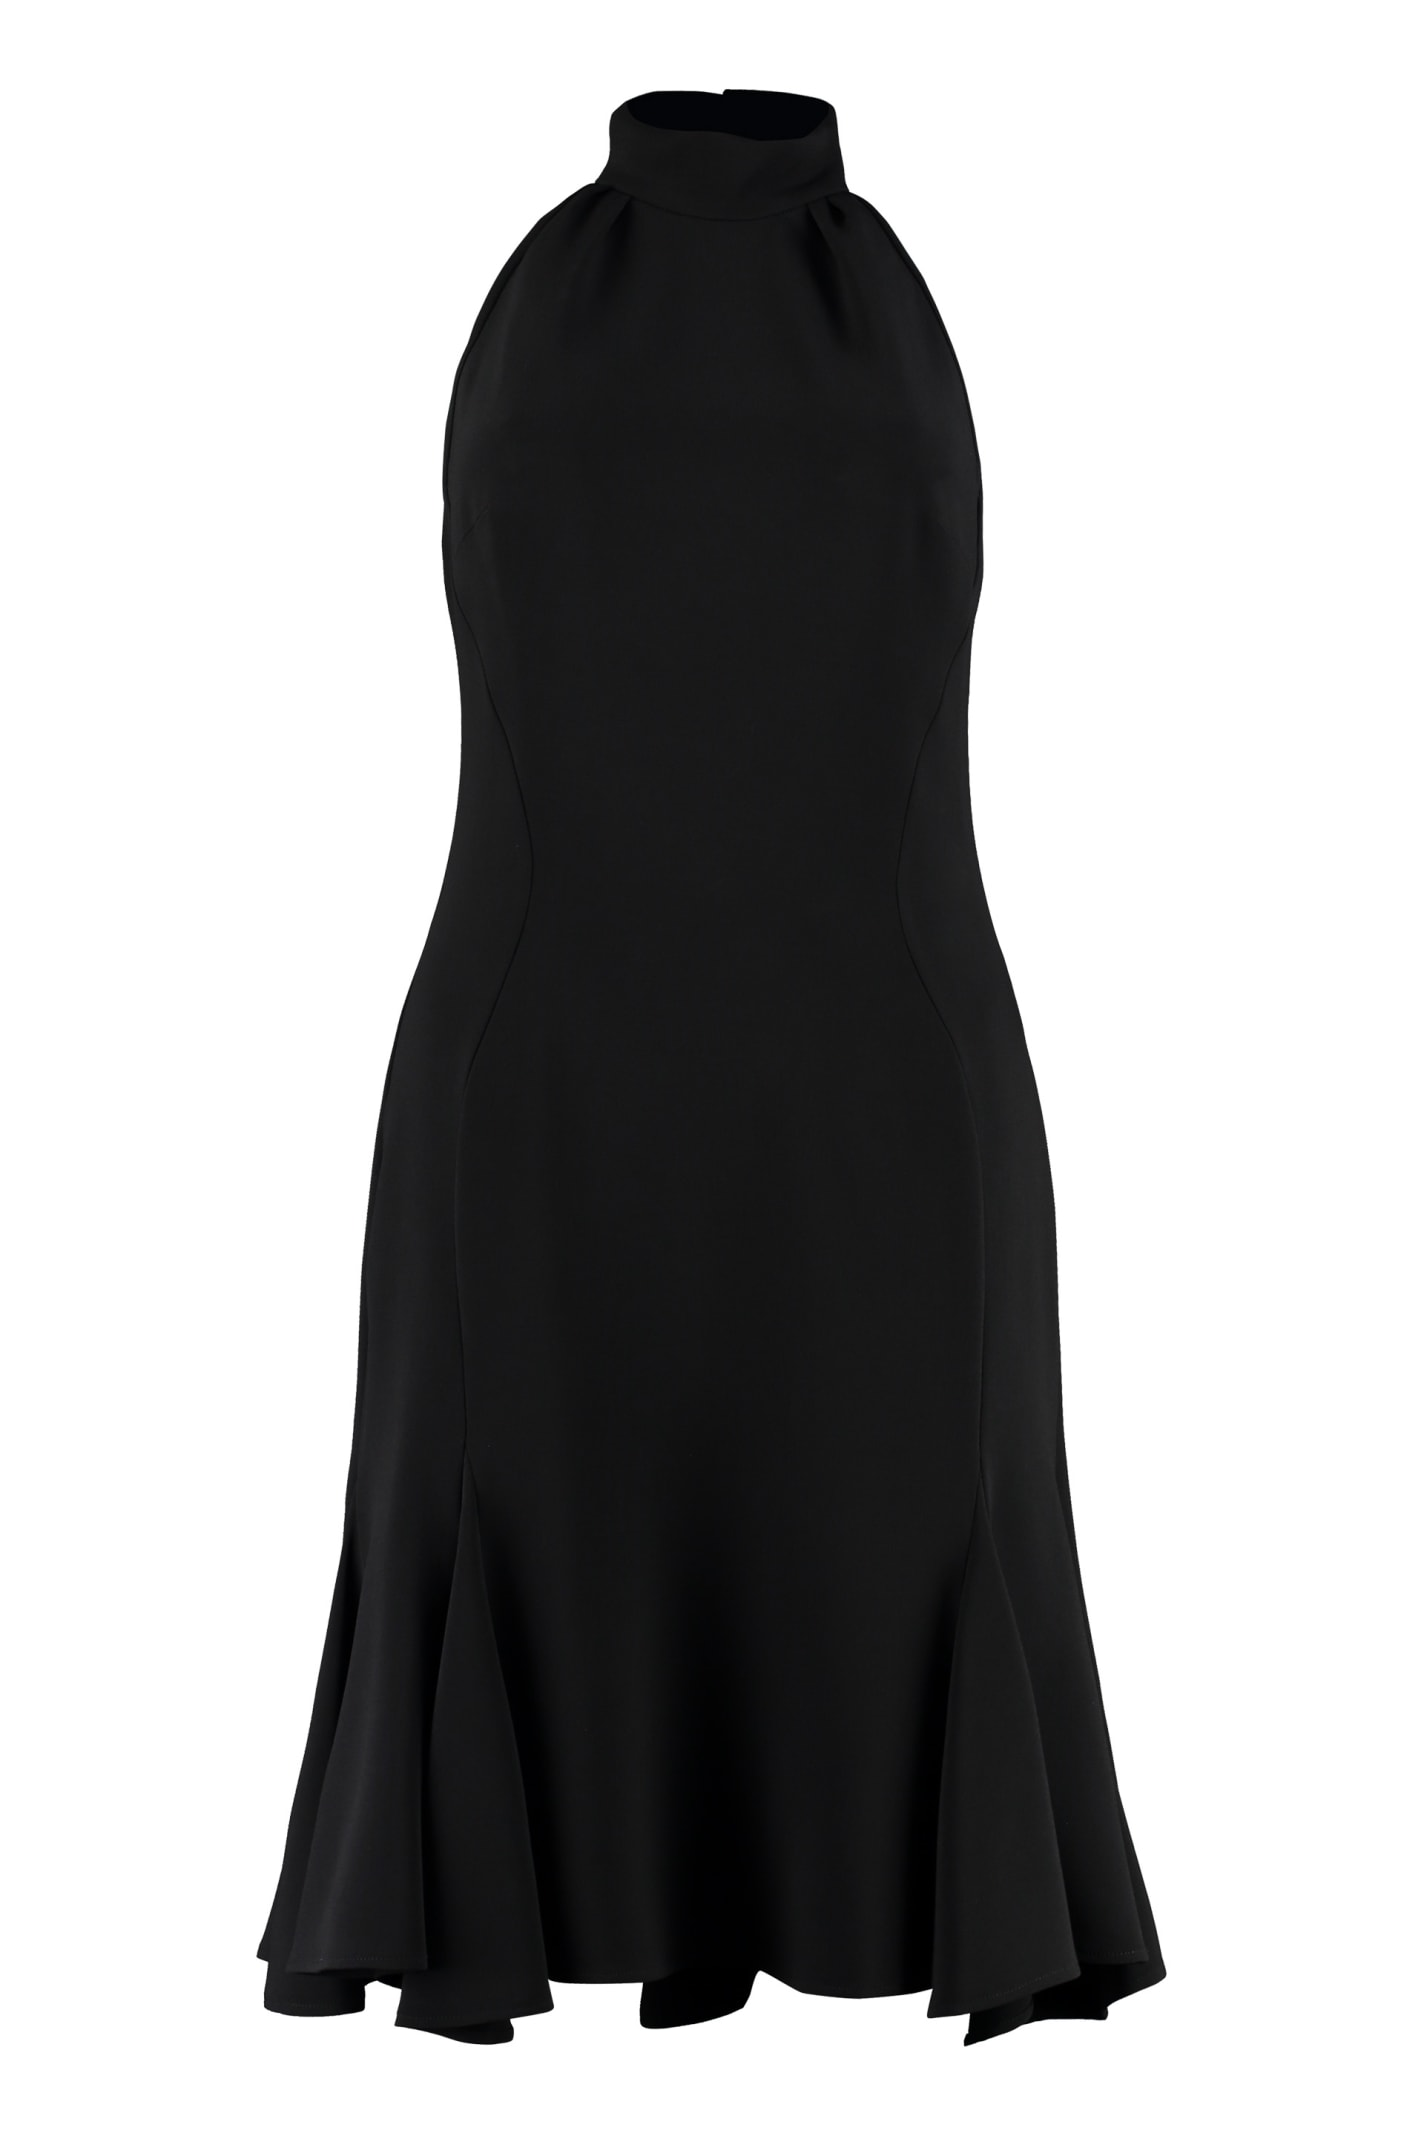 Stella McCartney Jayda Halter-neck Dress